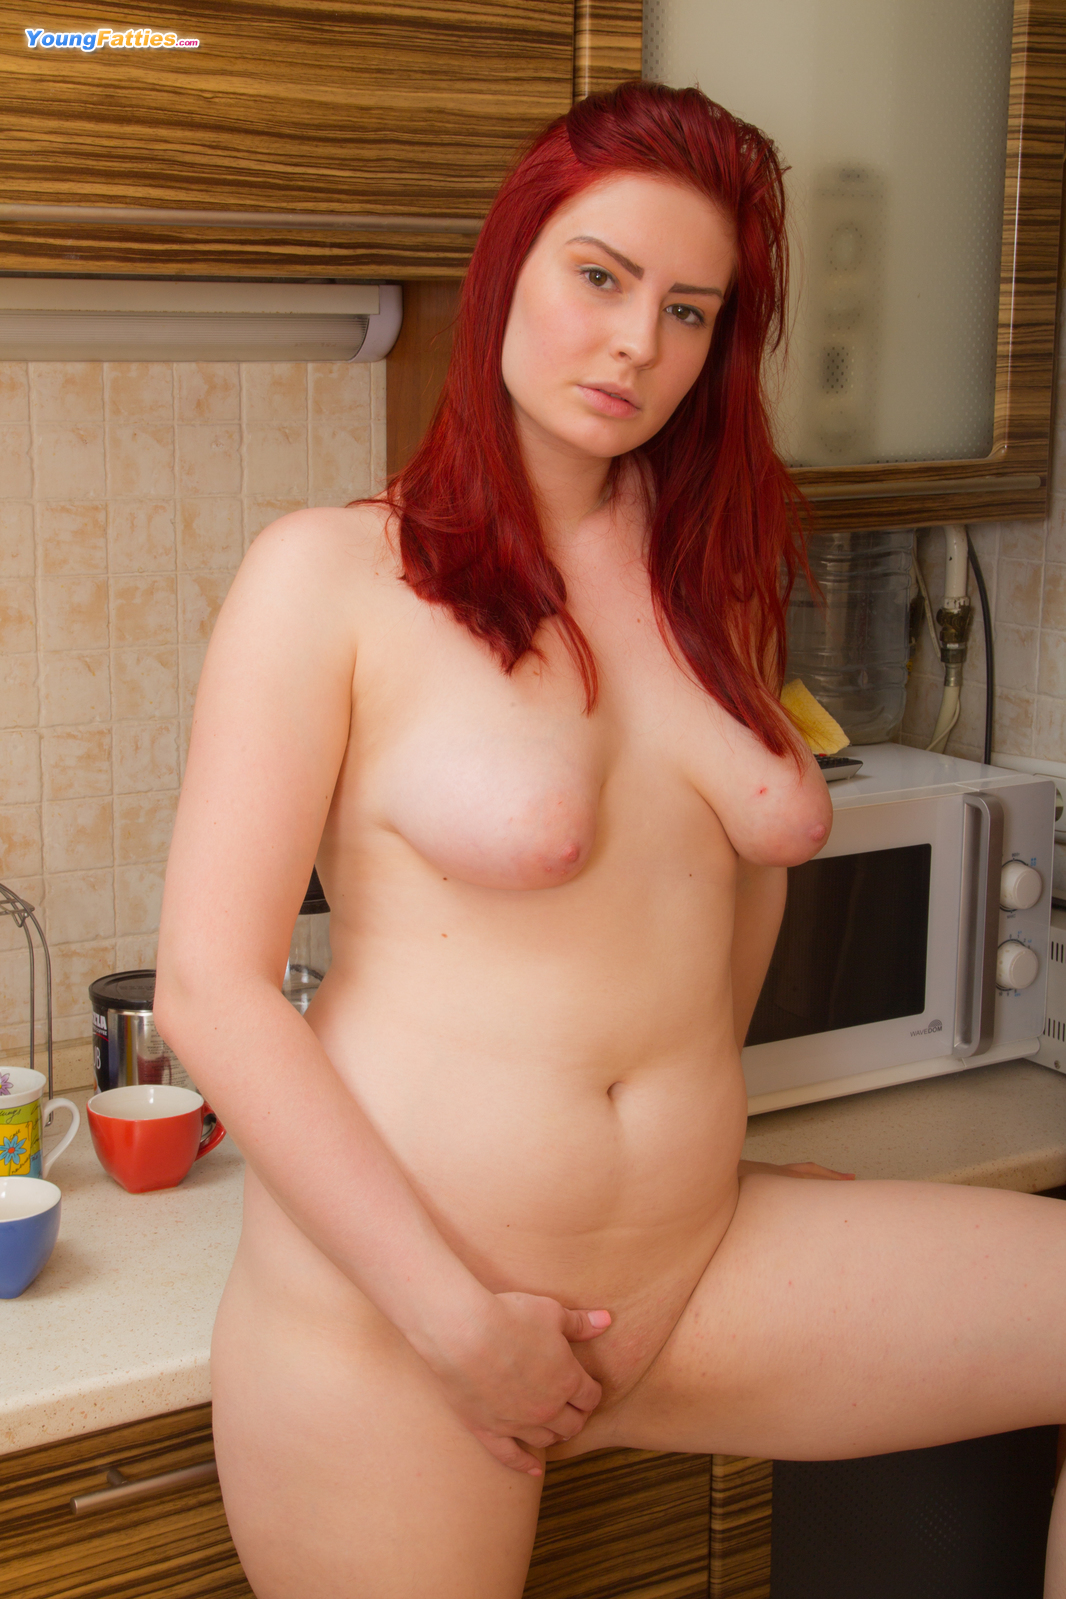 Cute chubby redhead from young fatties